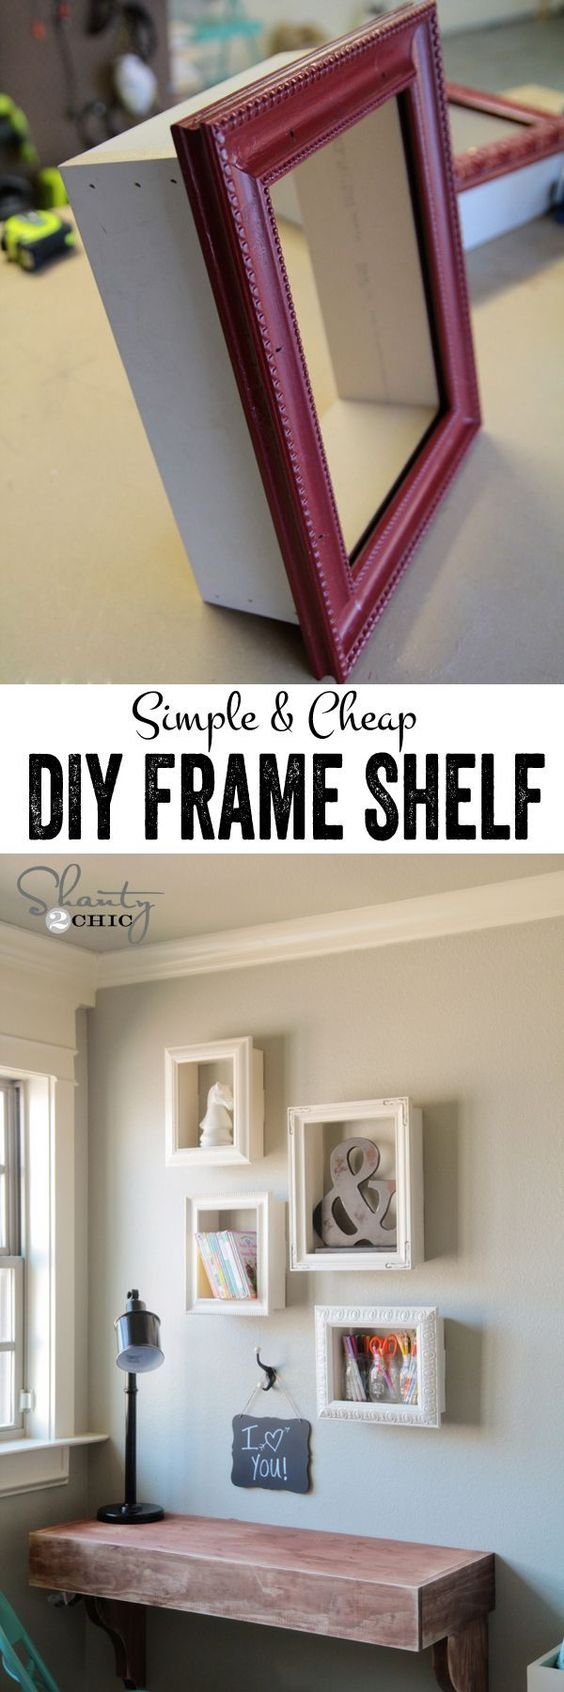 simple and cheap diy frame shelf